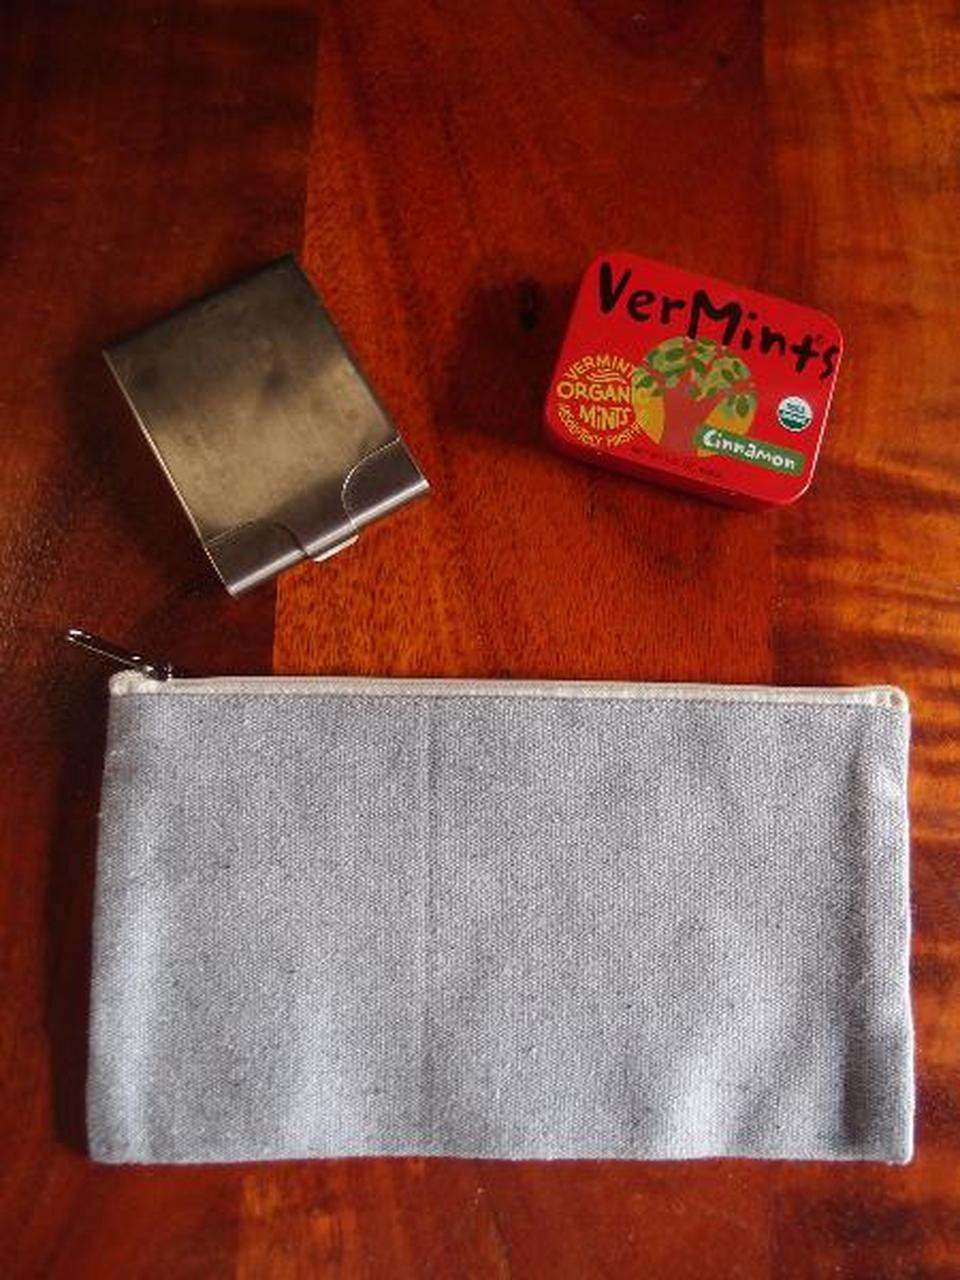 Gray Recycled Canvas Flat Zipper Pouch 9 inches, B694-70. This zipper bag functions perfectly as a makeup pouch, toiletry bag, pencil pouch, gadget pouch or cable pouch. It is perfect for carrying travel essentials.